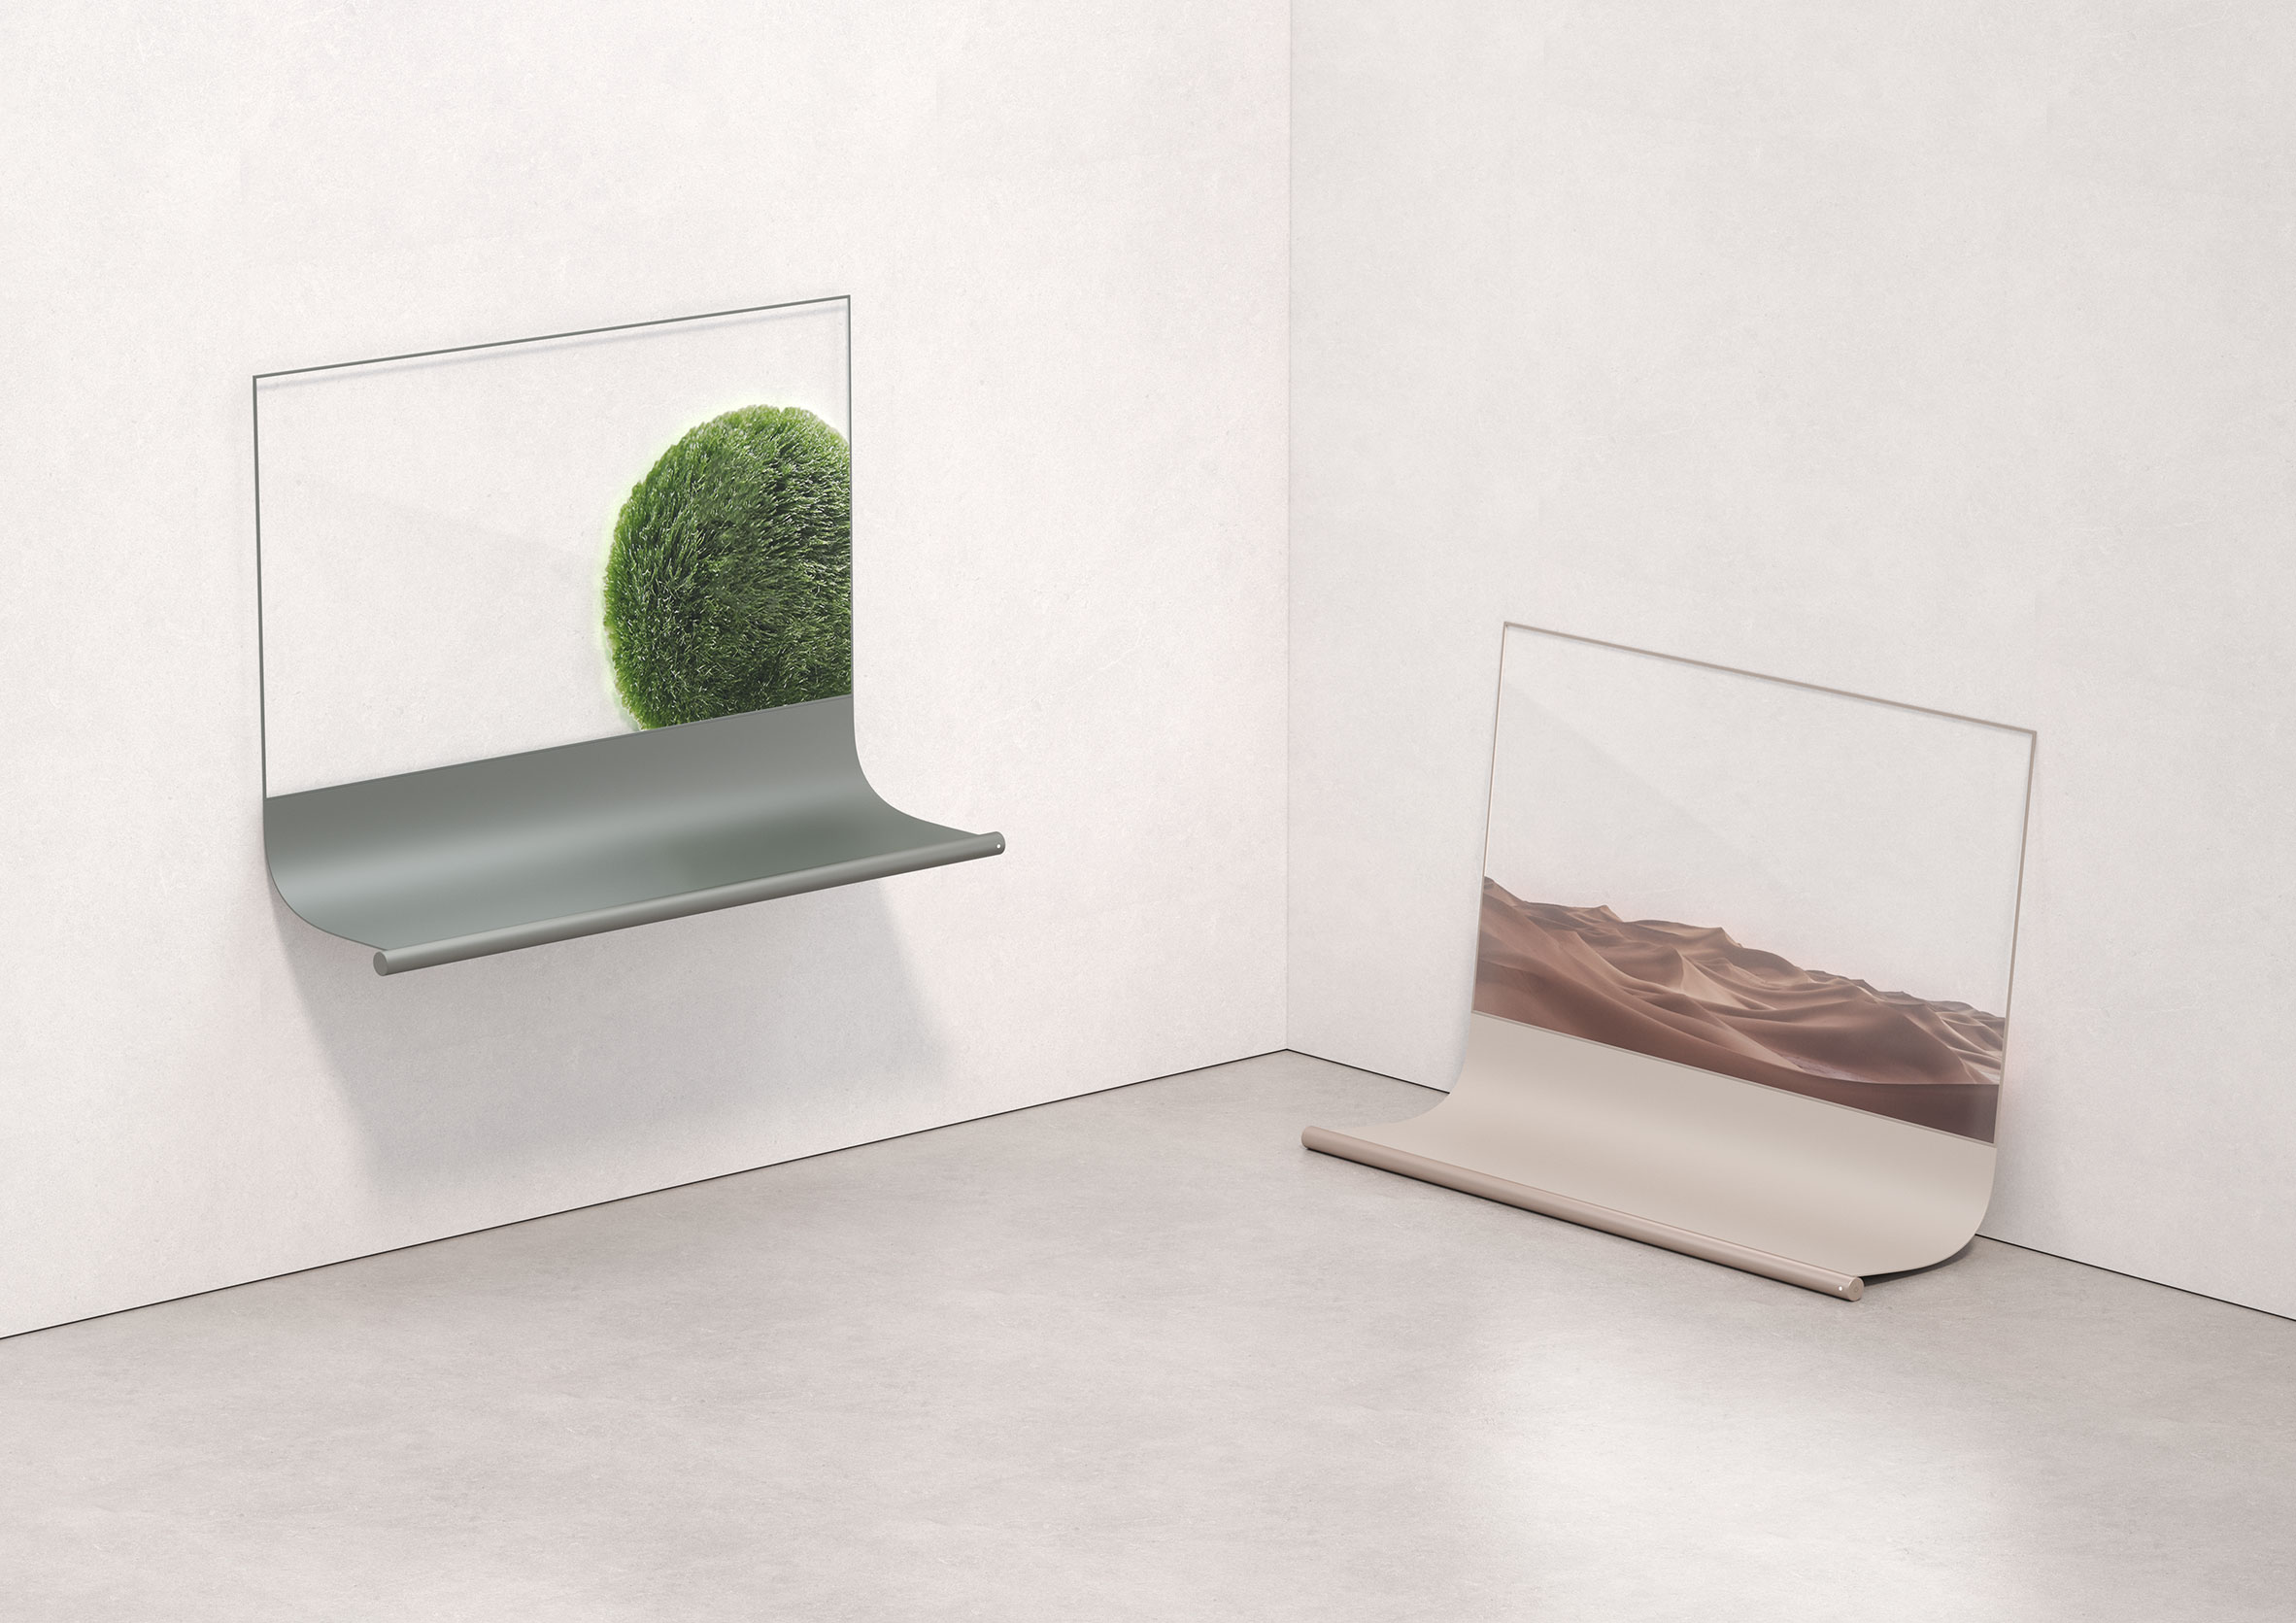 Scroll by Richard Bone a finalist in the Dezeen and LG Display OLED Go competition